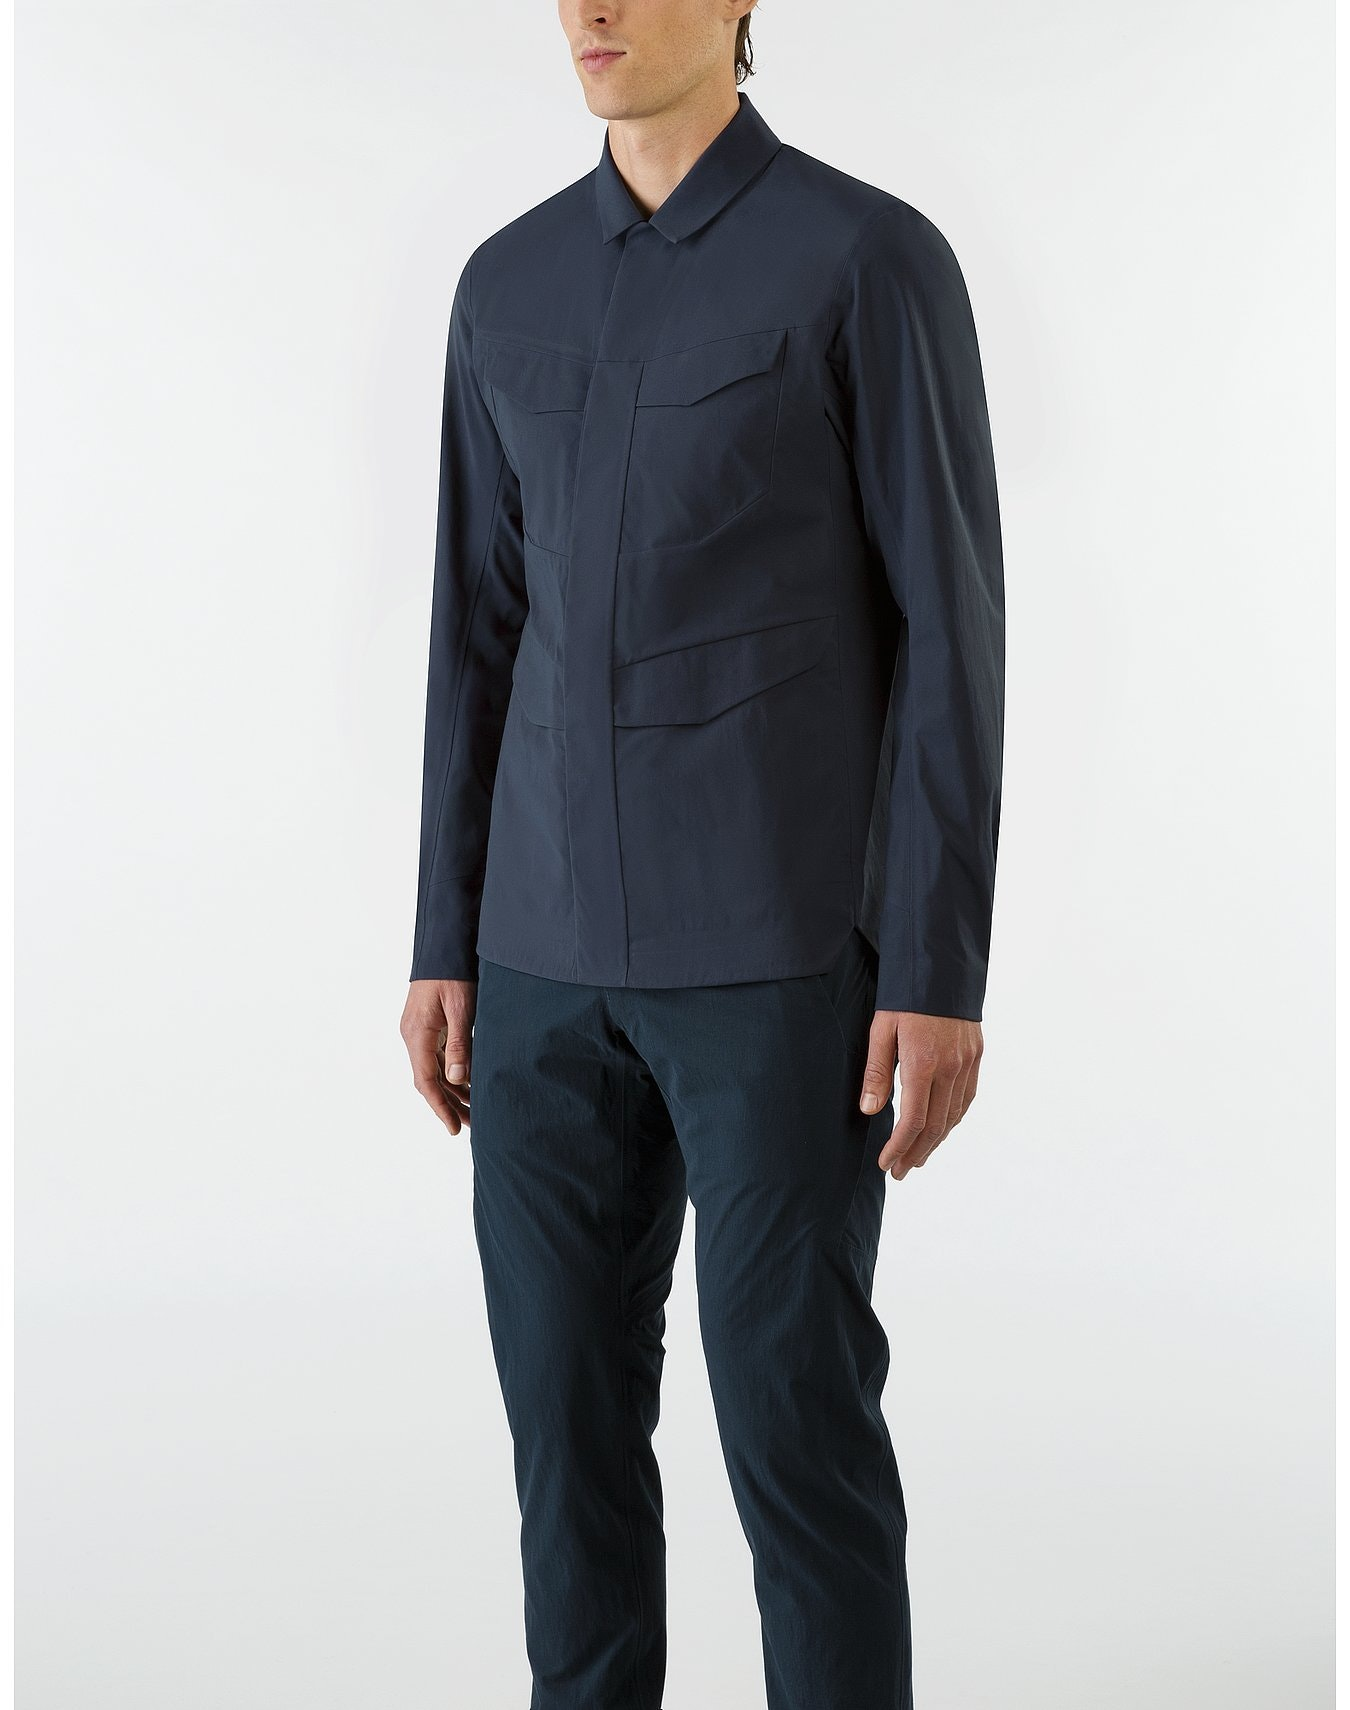 Field-Overshirt-Dark-Navy.jpg?auto=forma